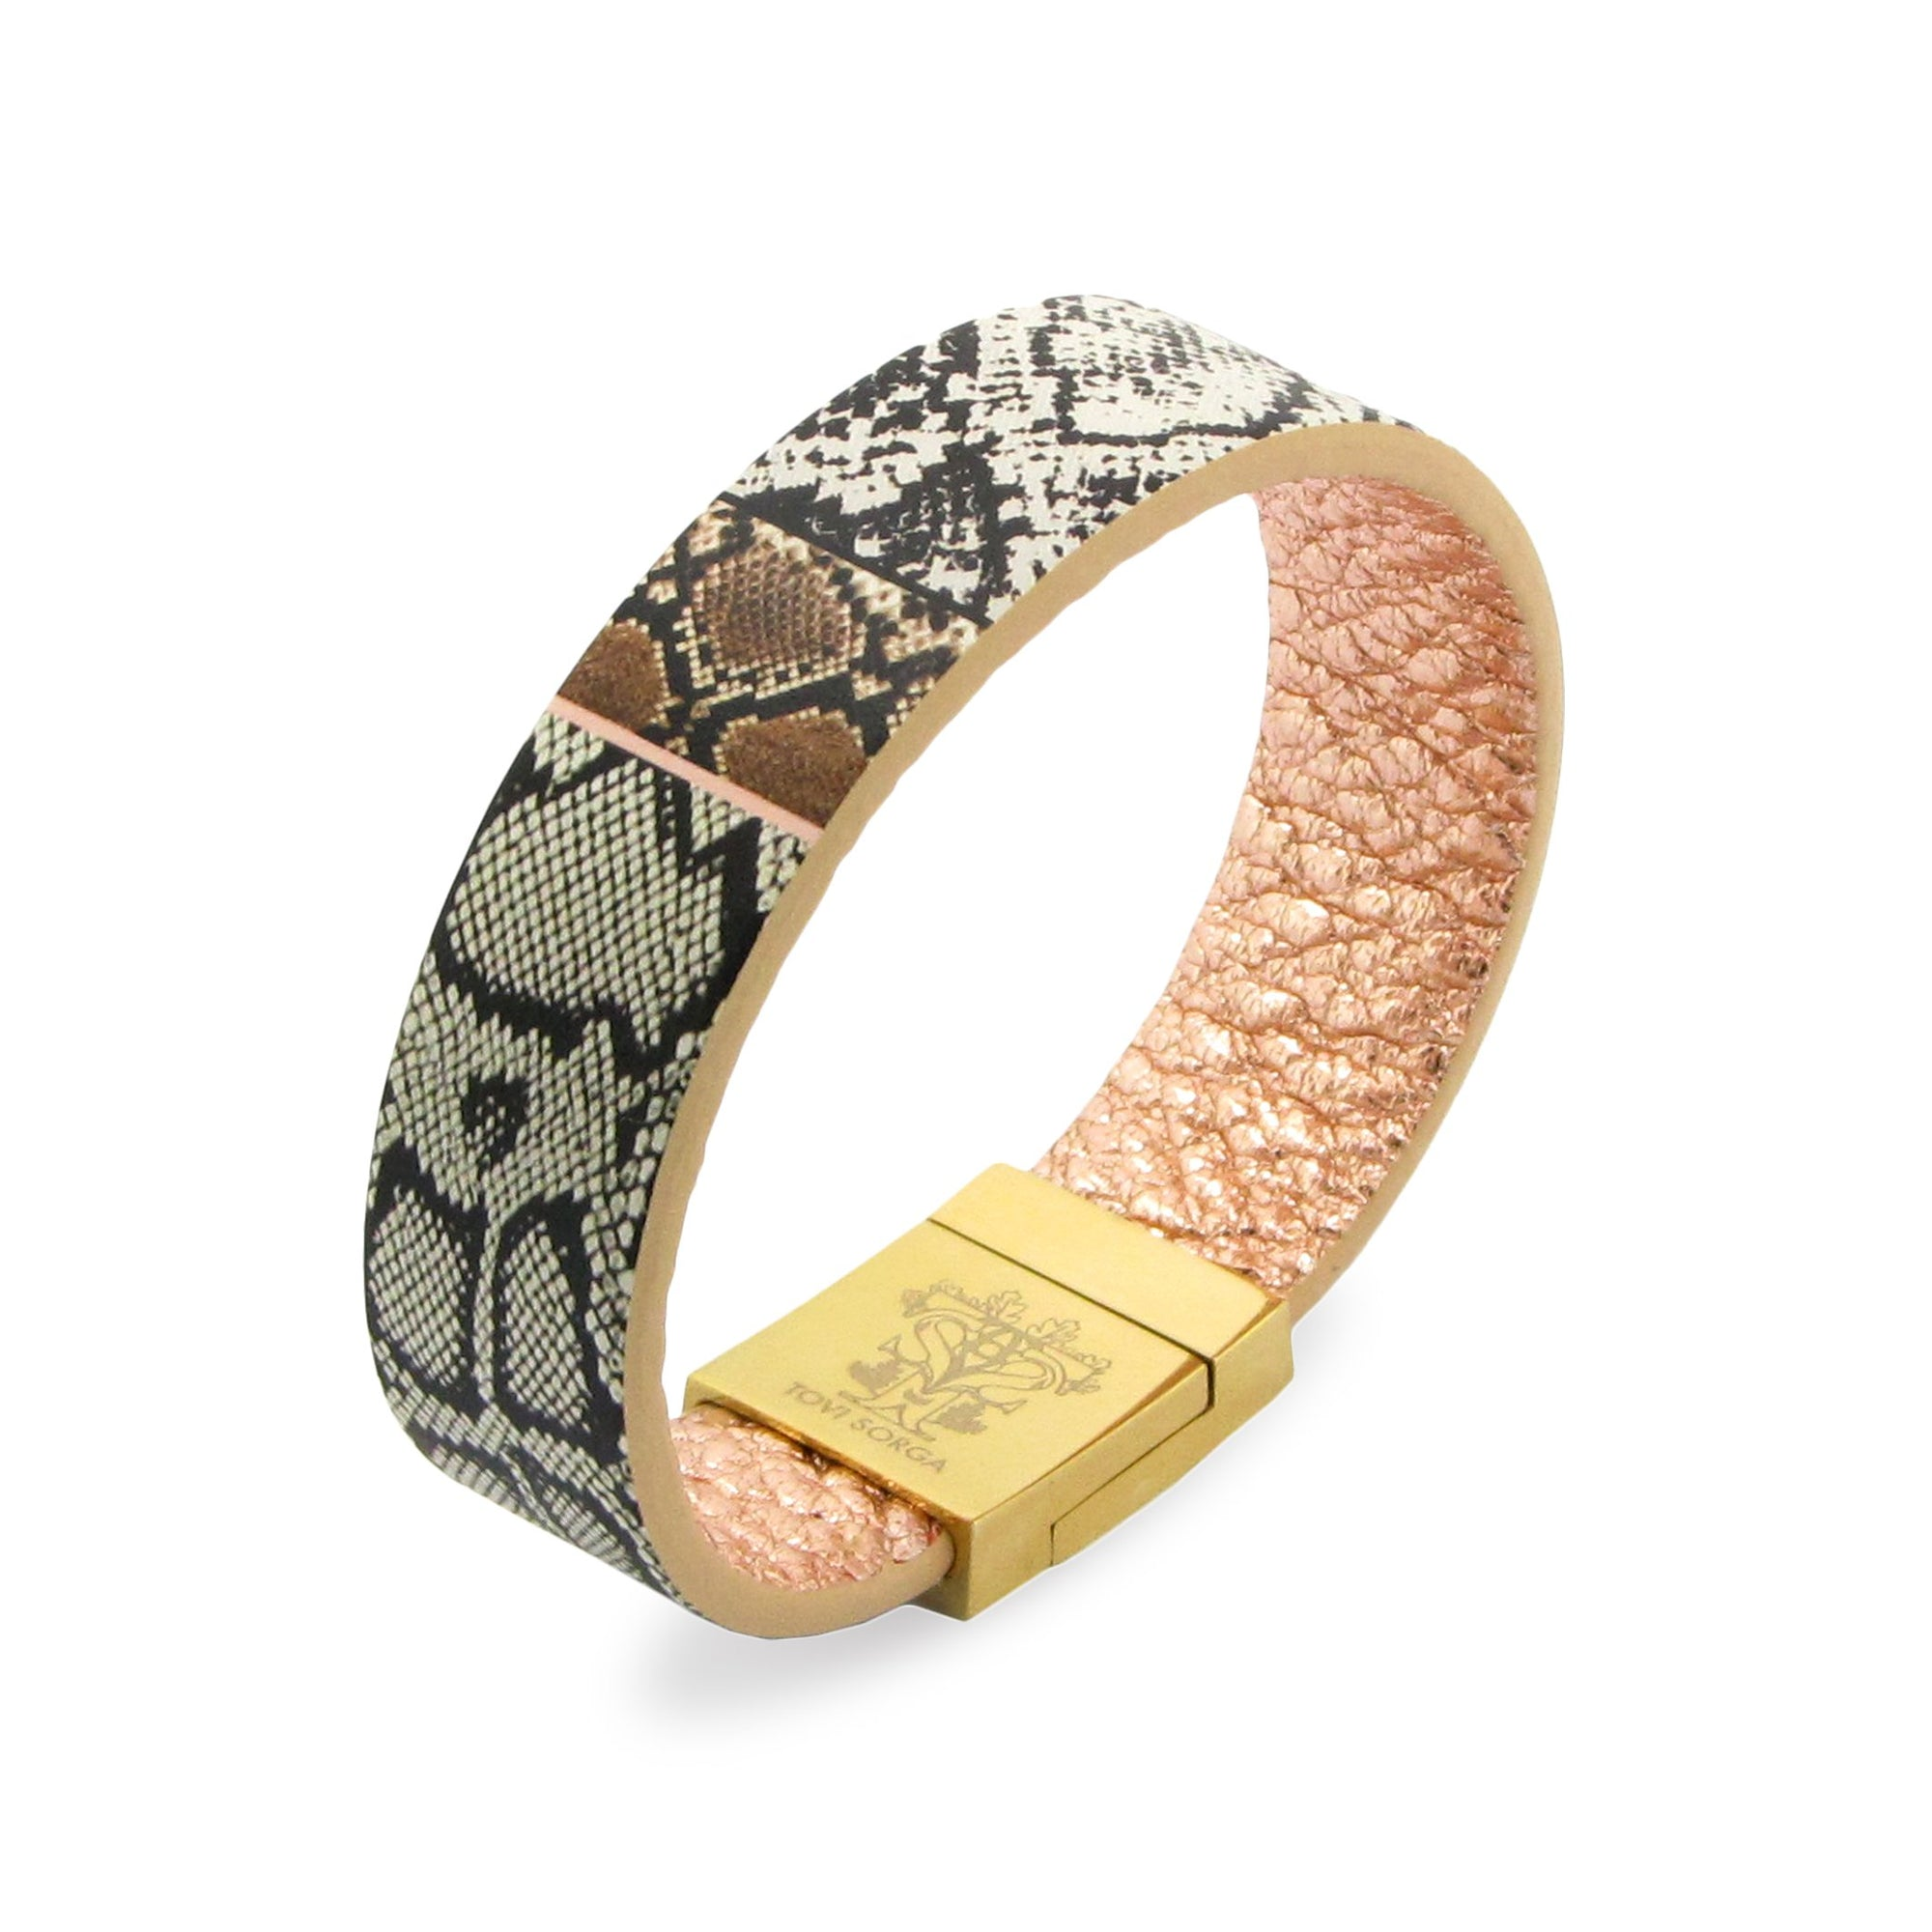 Leather Contactless Payment Bracelet: White Snake Contactless Payment Bracelet Tovi Sorga Extra-Small Grey